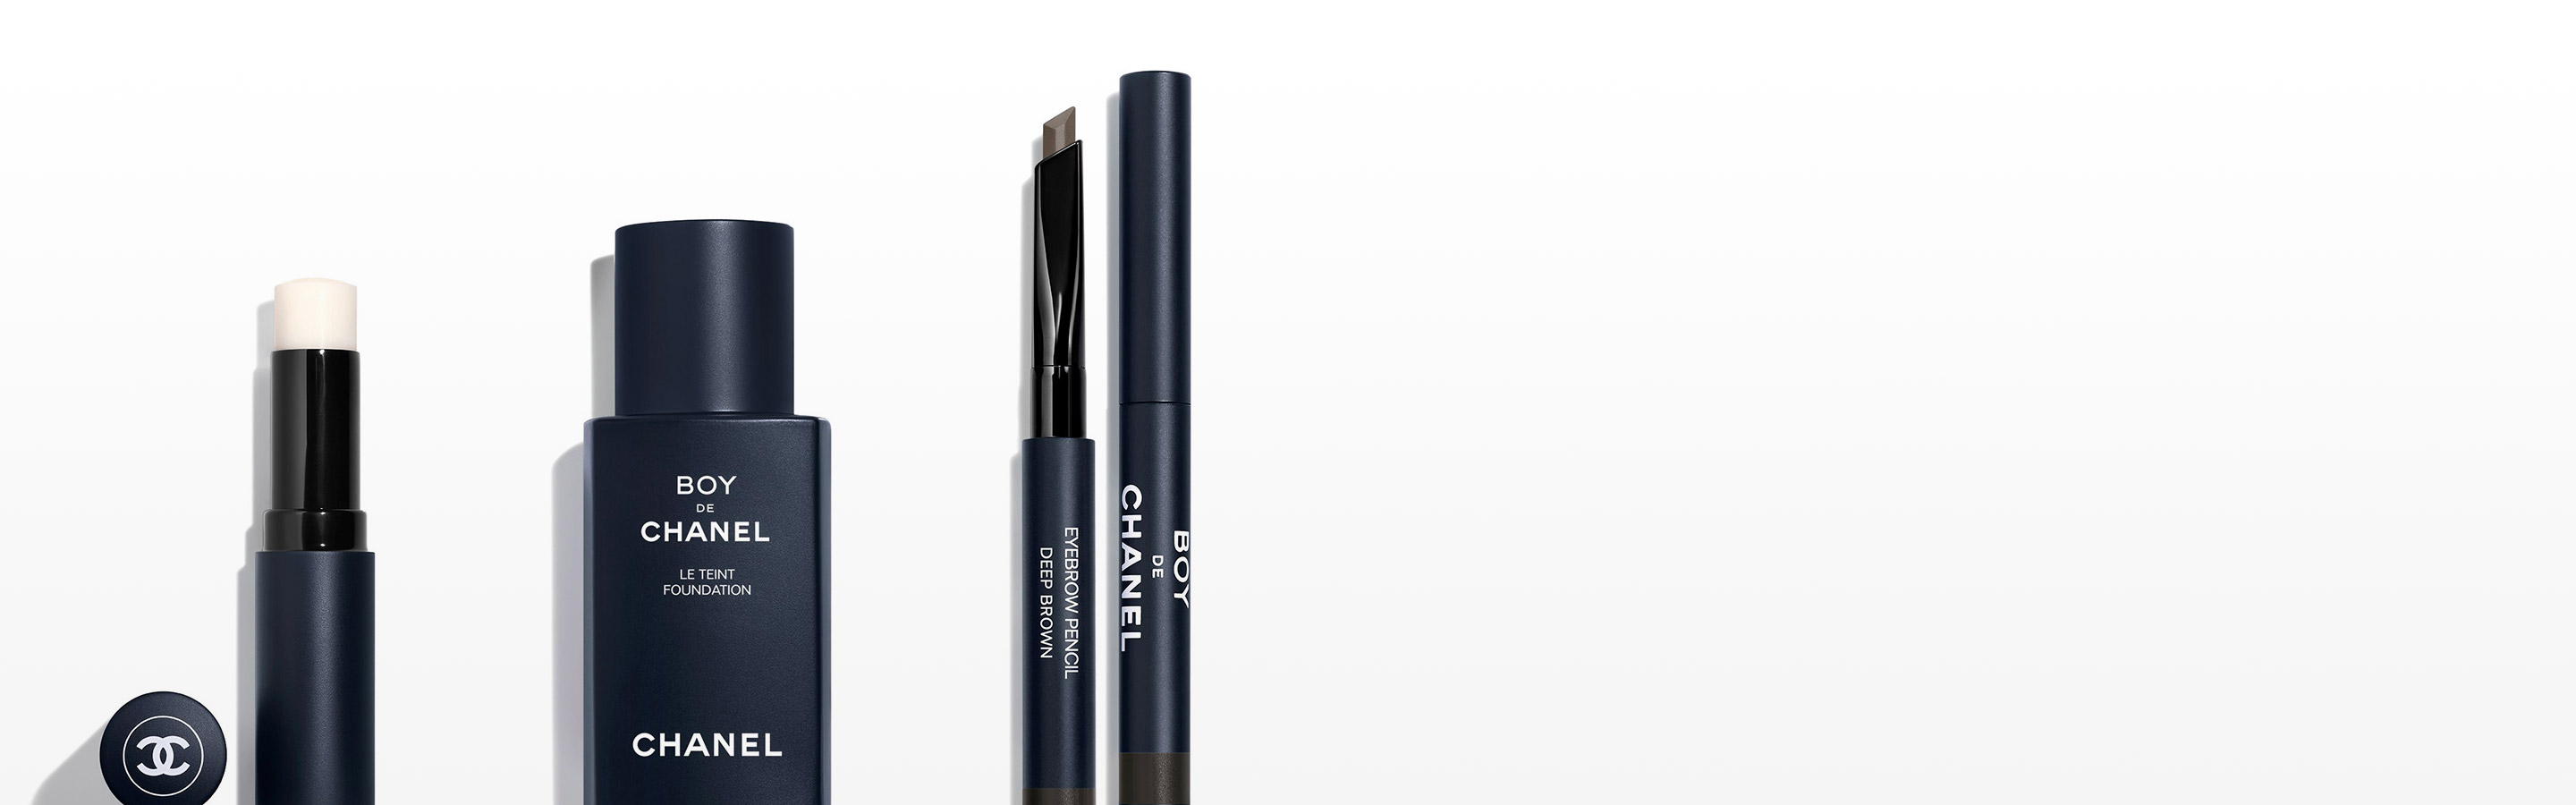 Boy de CHANEL le Stylo Sourcils - CHANEL